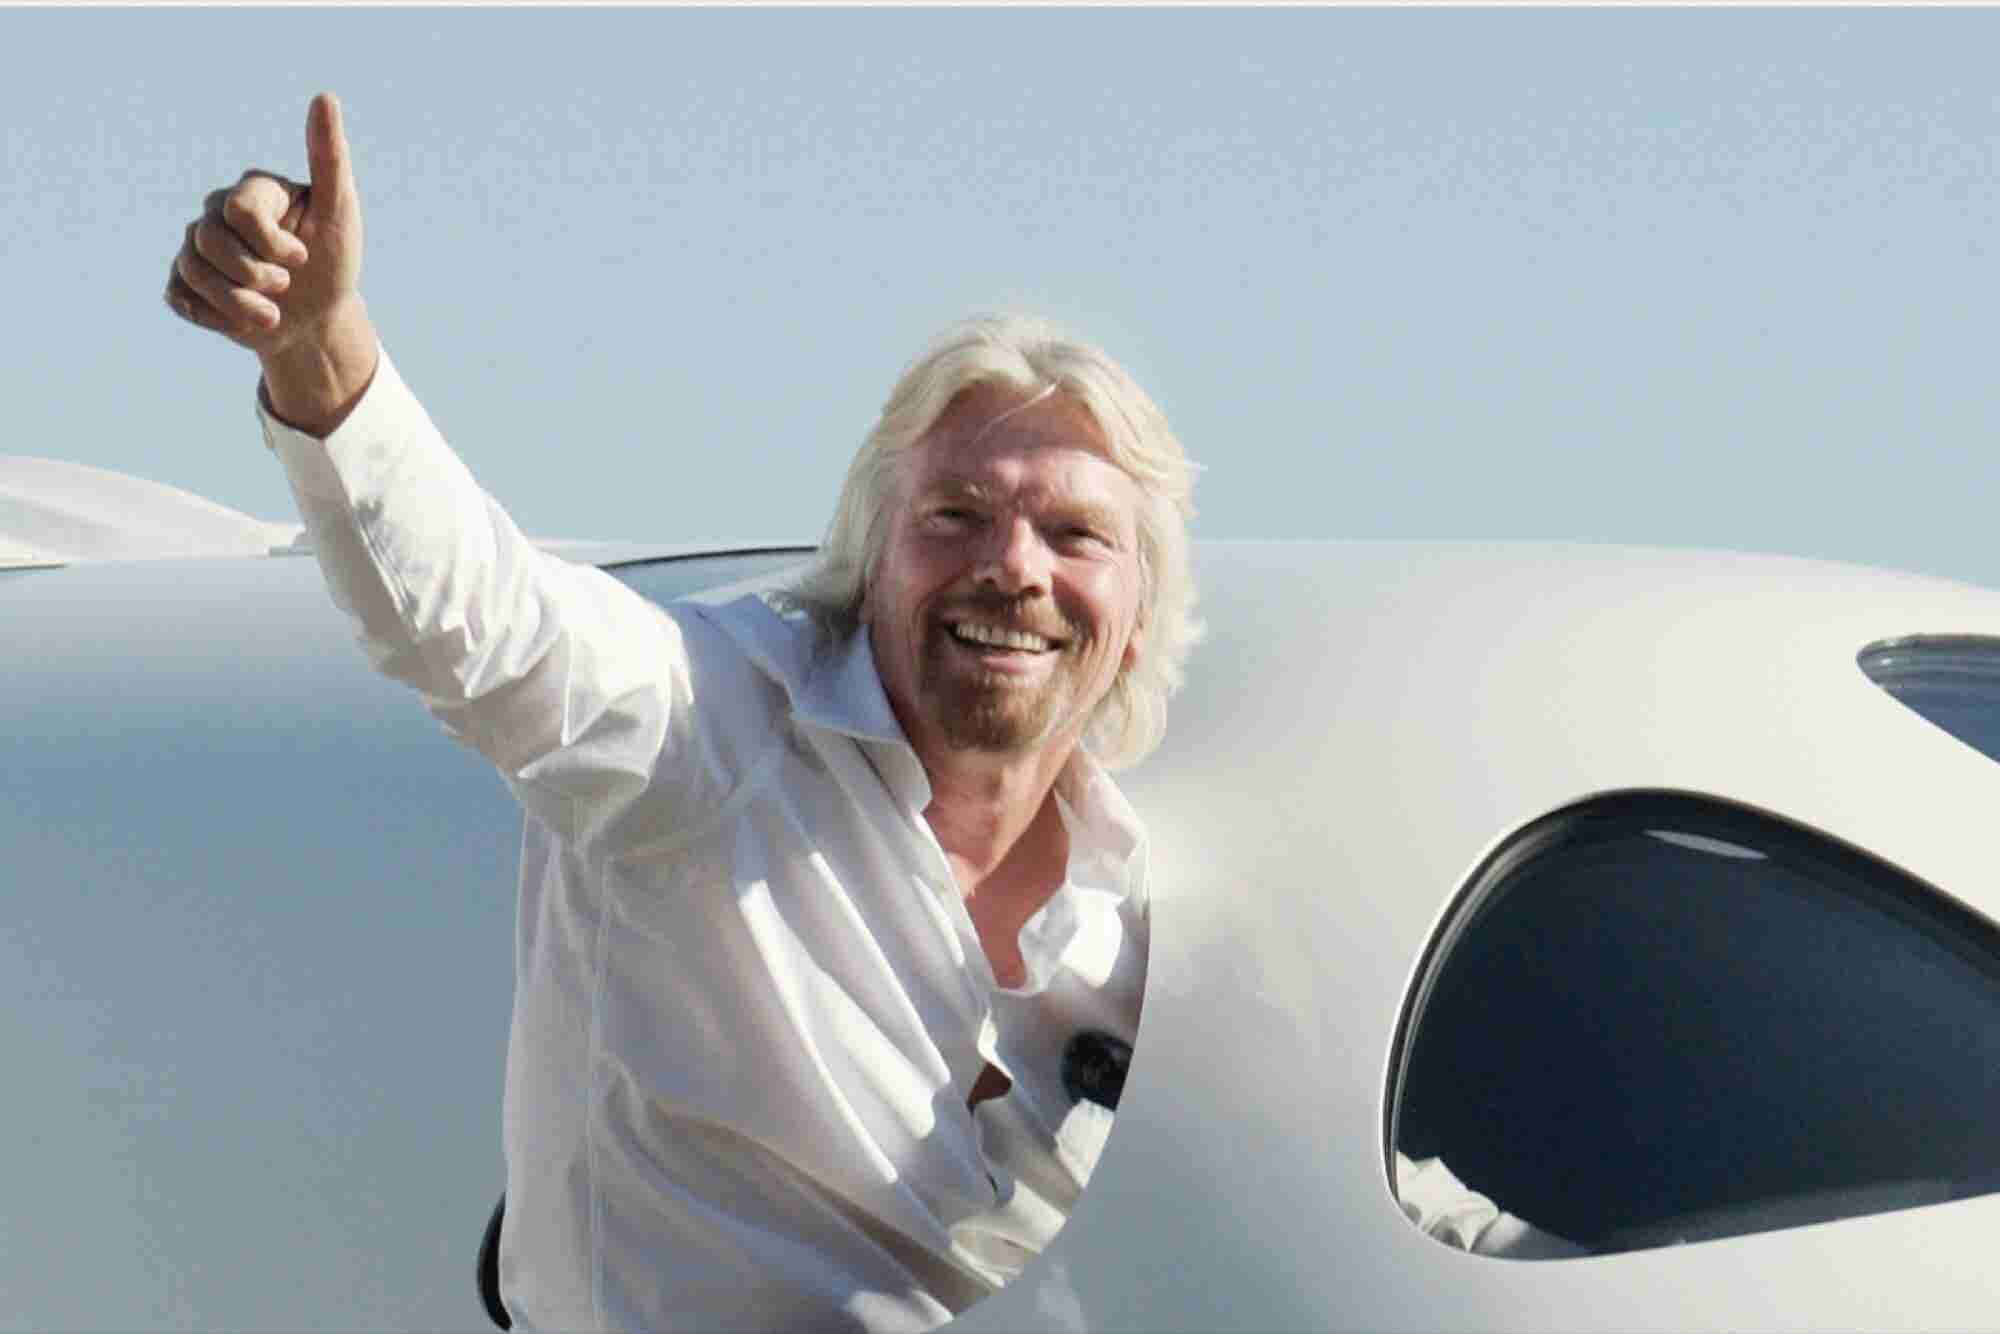 Richard Branson Now Offers Employees a Full Year of Parental Leave